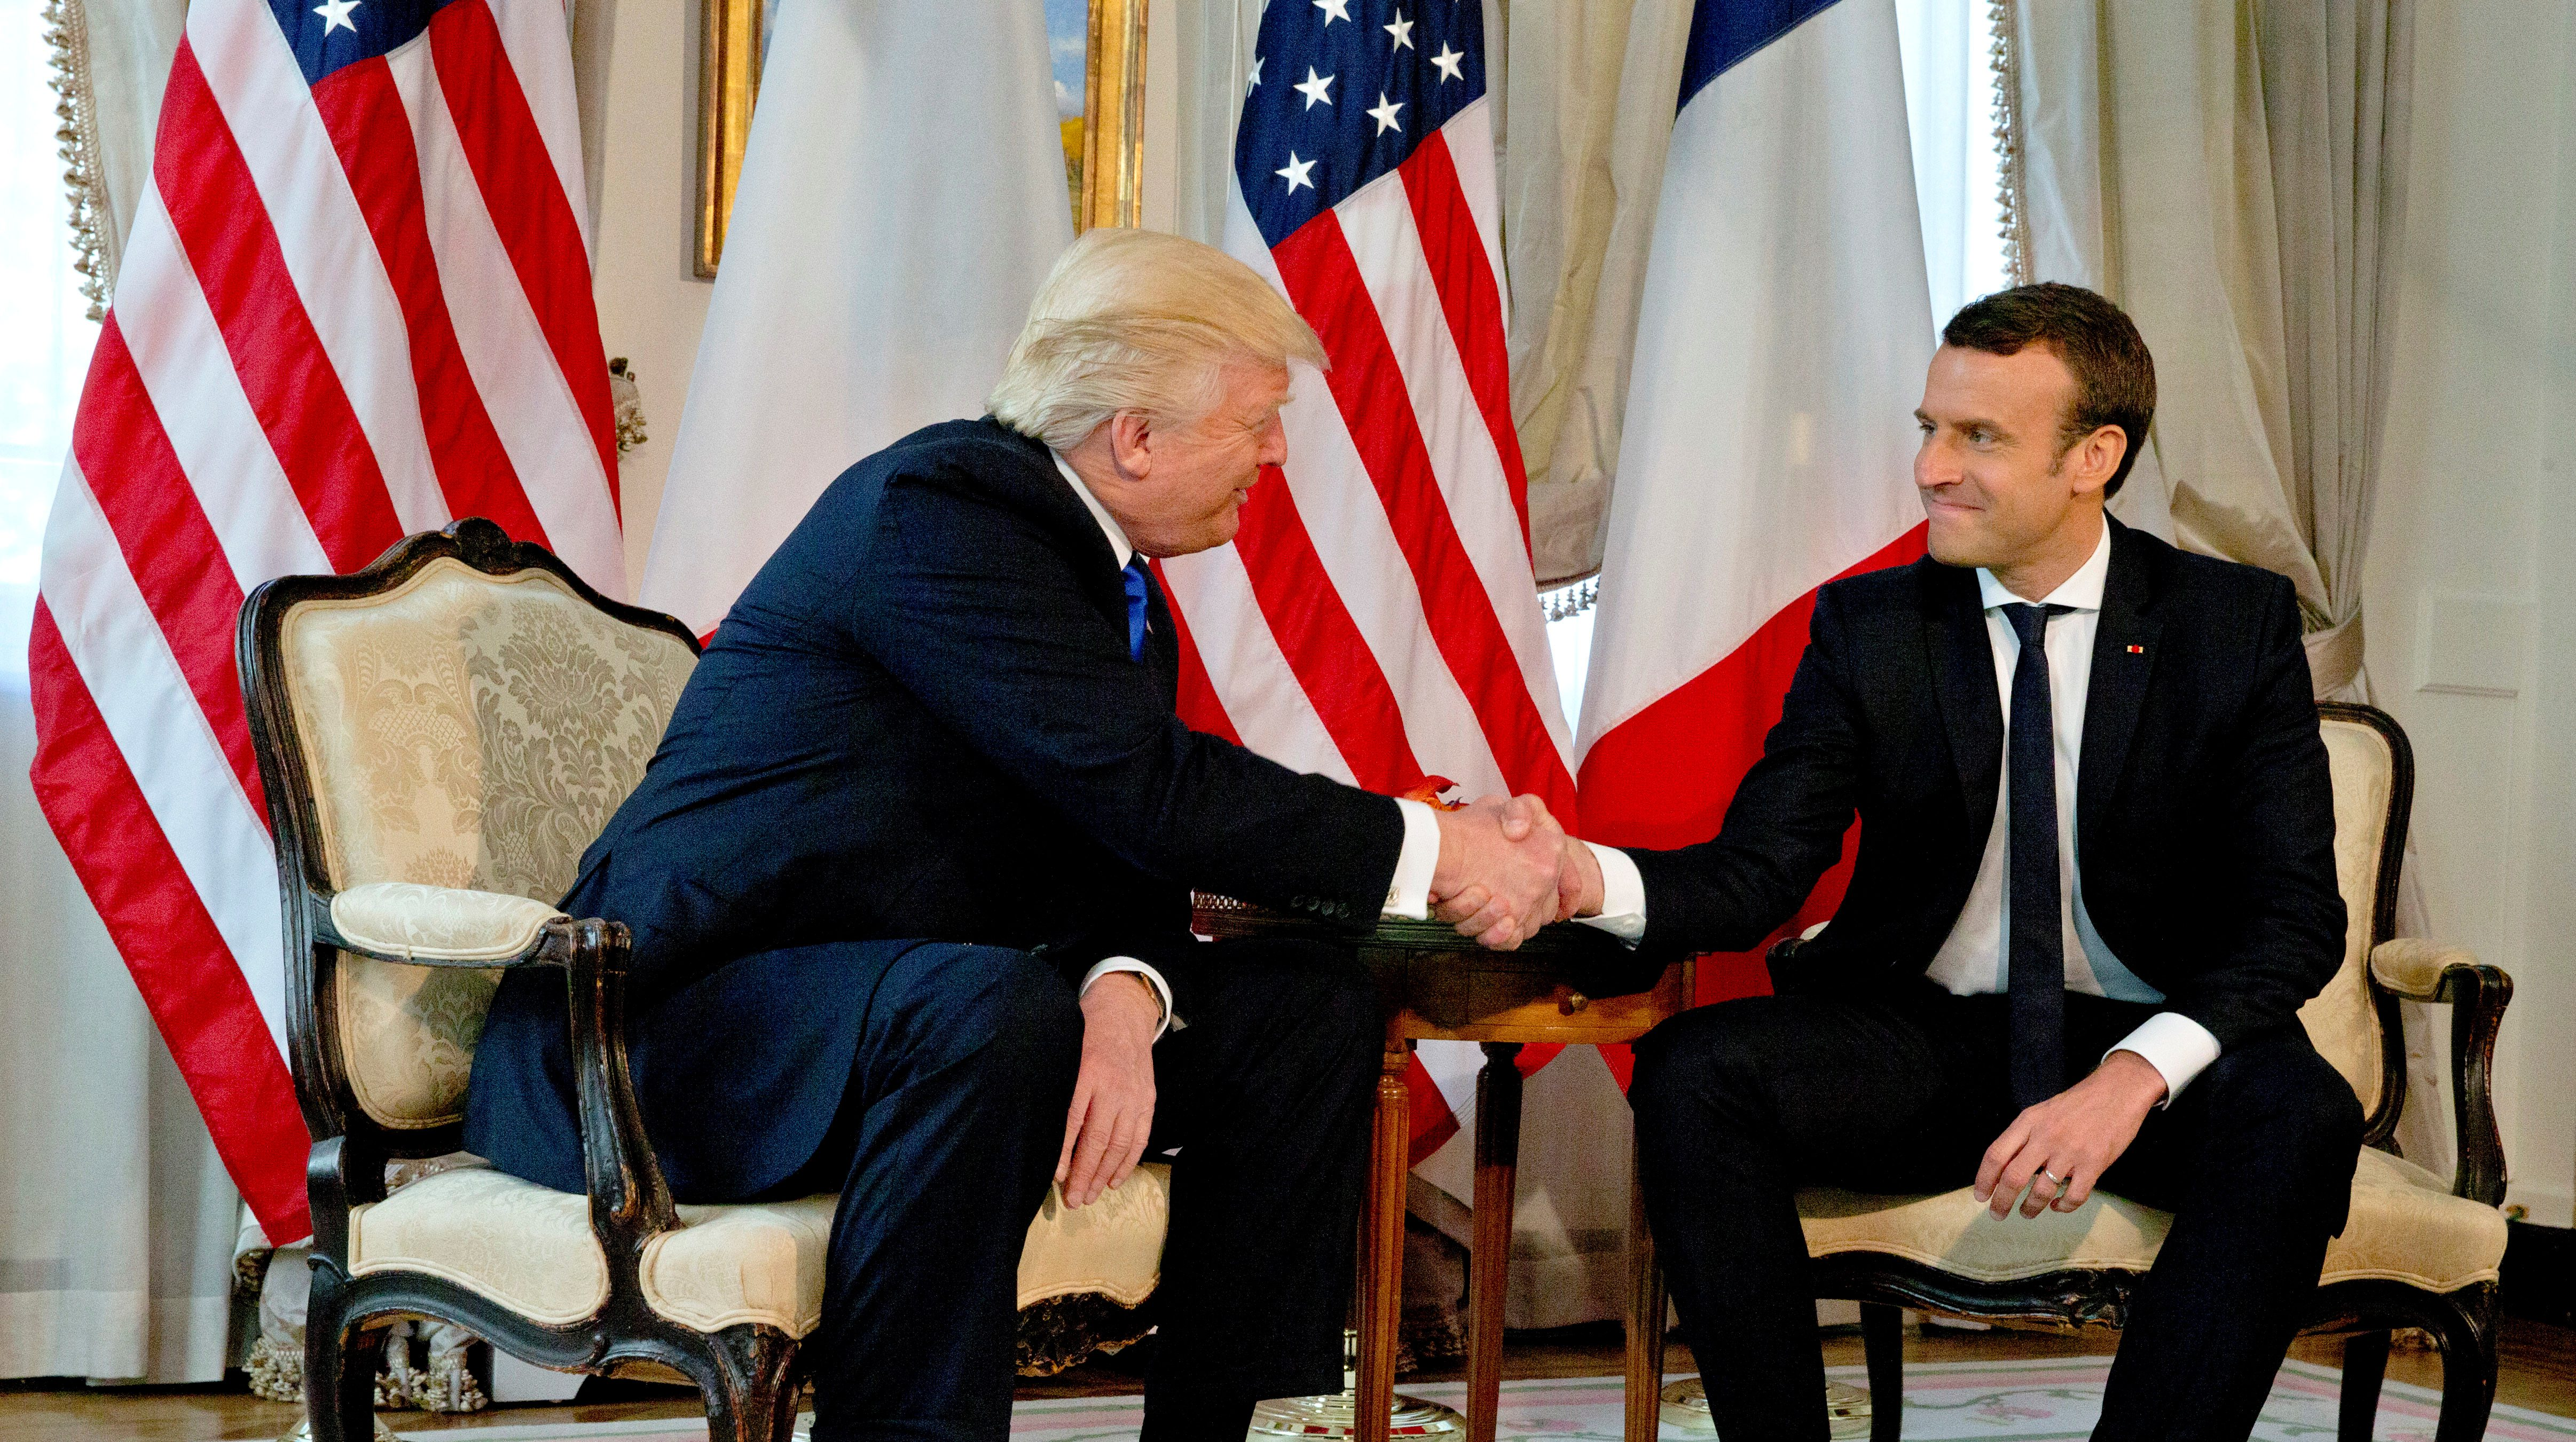 U.S. President Donald Trump (L) shakes hands with French President Emmanuel Macron before a working lunch ahead of a NATO Summit in Brussels, Belgium, May 25, 2017. REUTERS/Peter Dejong/Pool - RTX37KVY